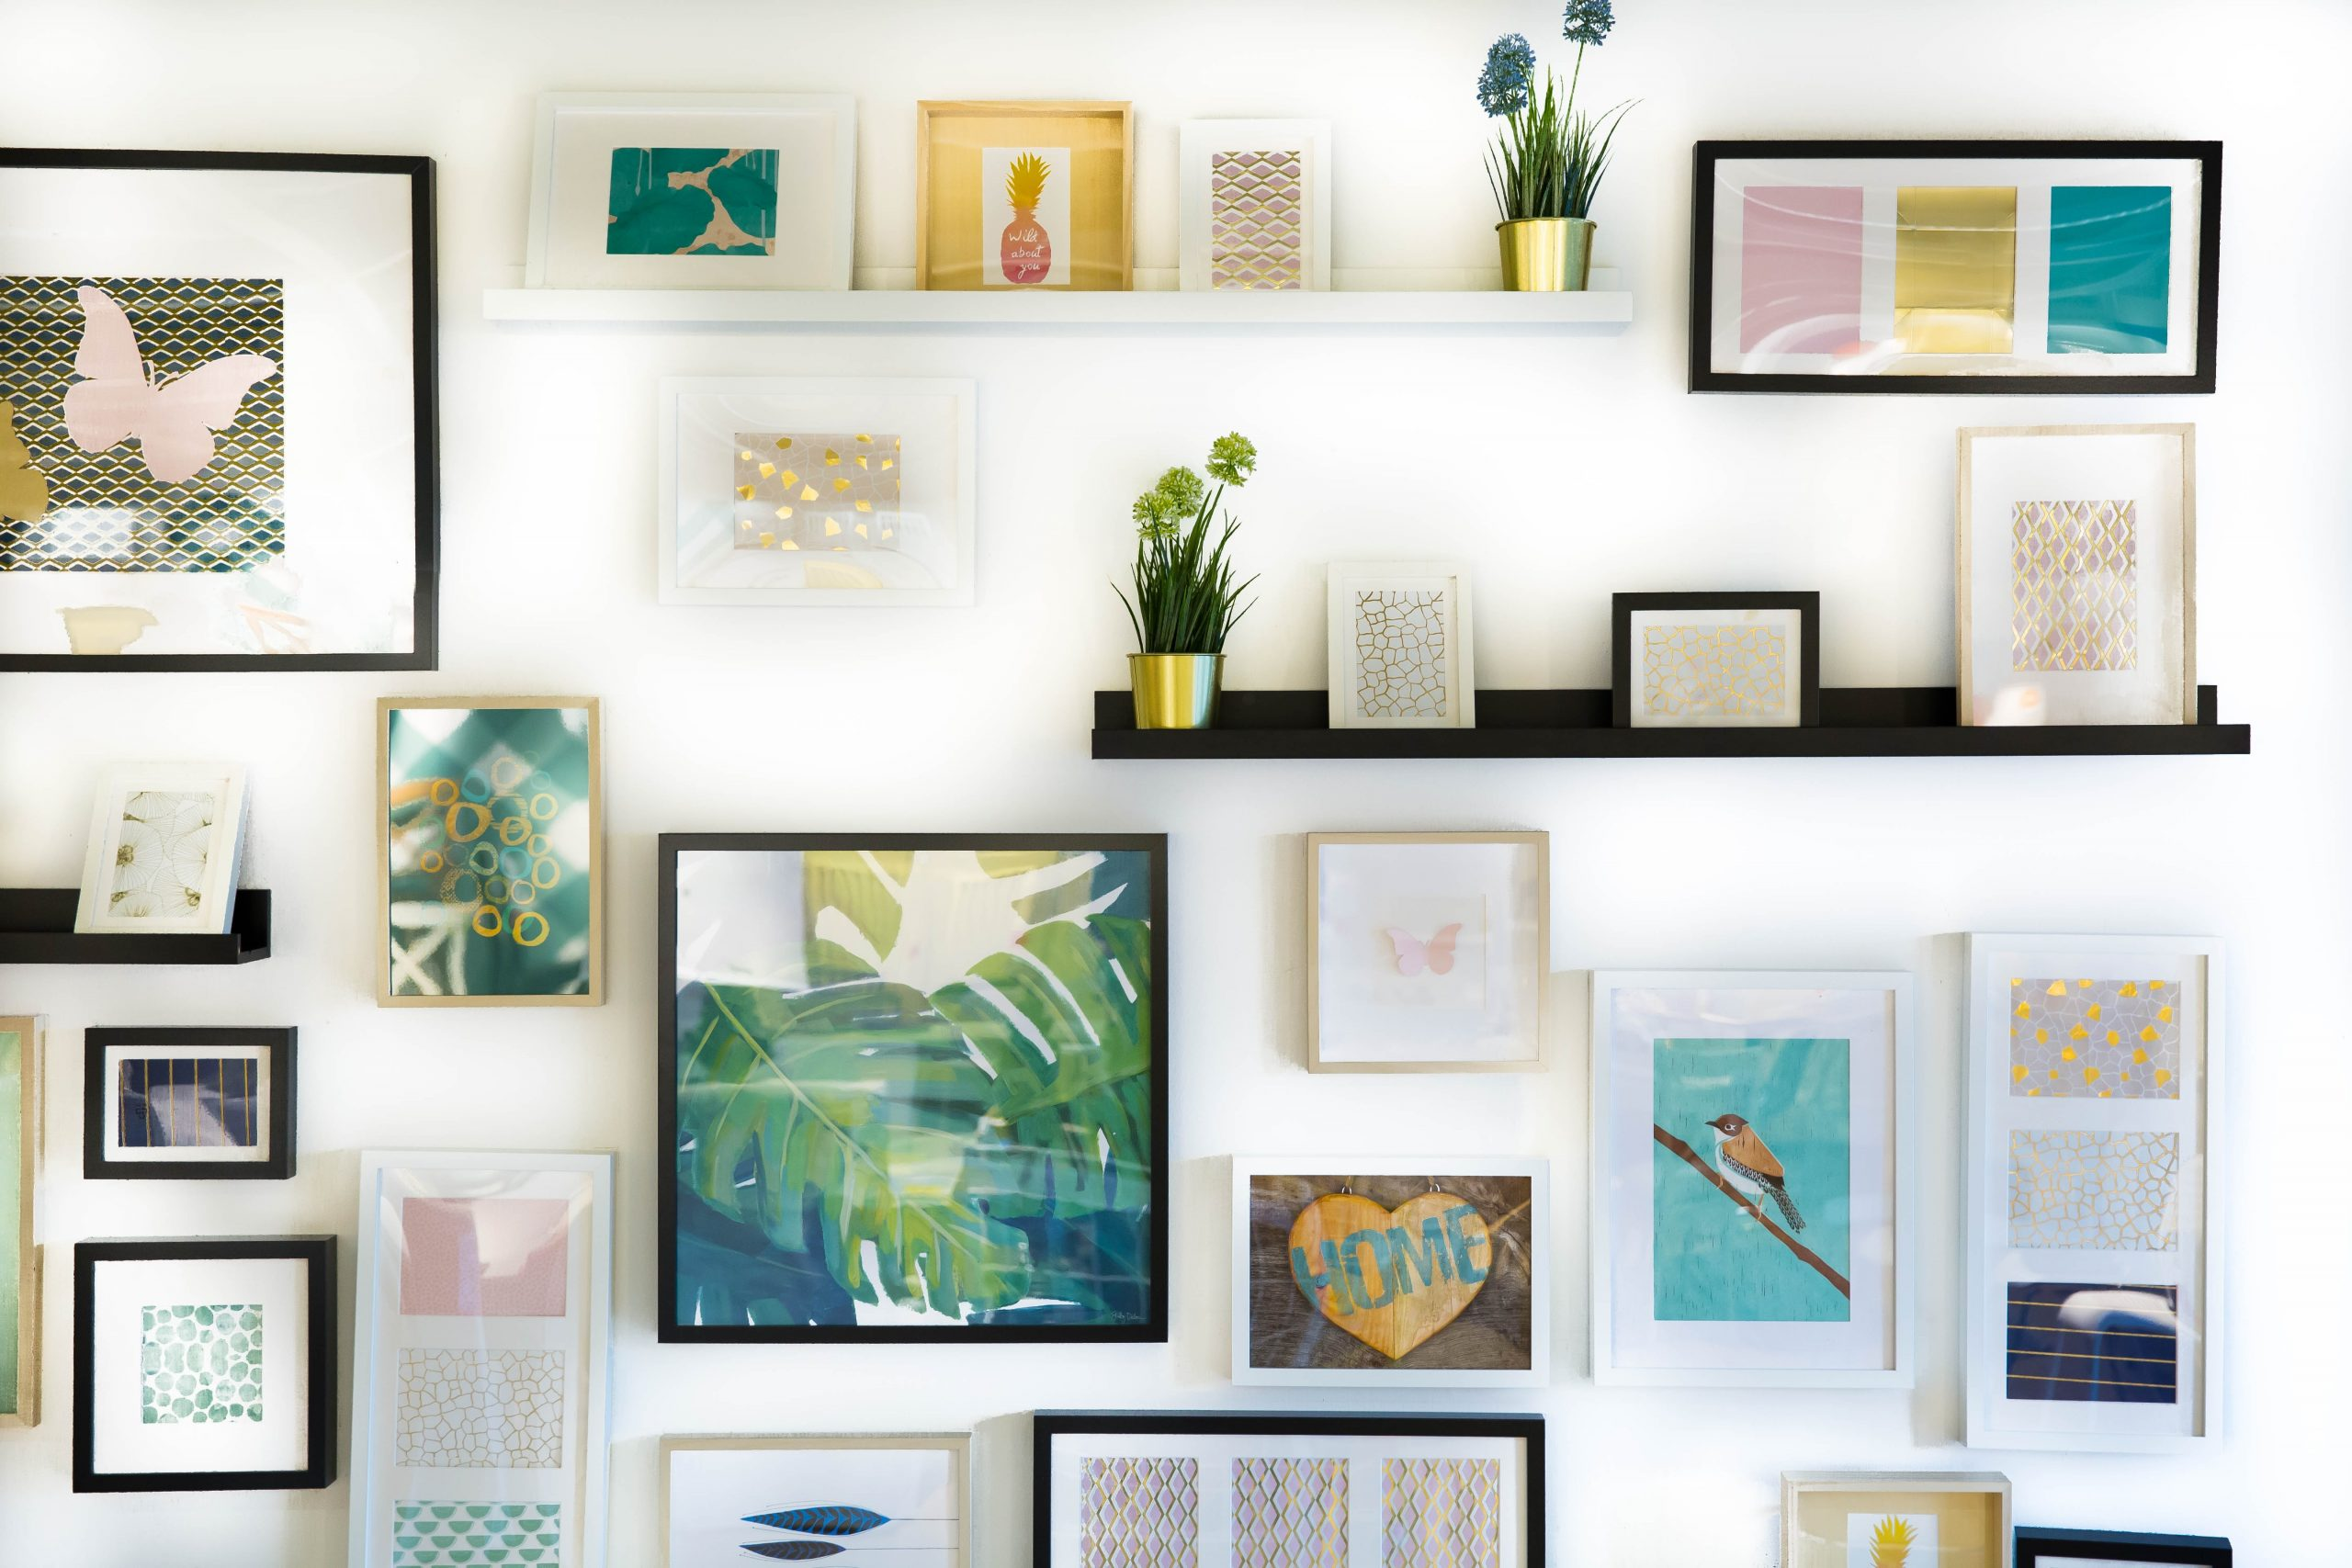 Picture of apartment wall with art for article featuring The Best Artists to Help Decorate Your Apartment